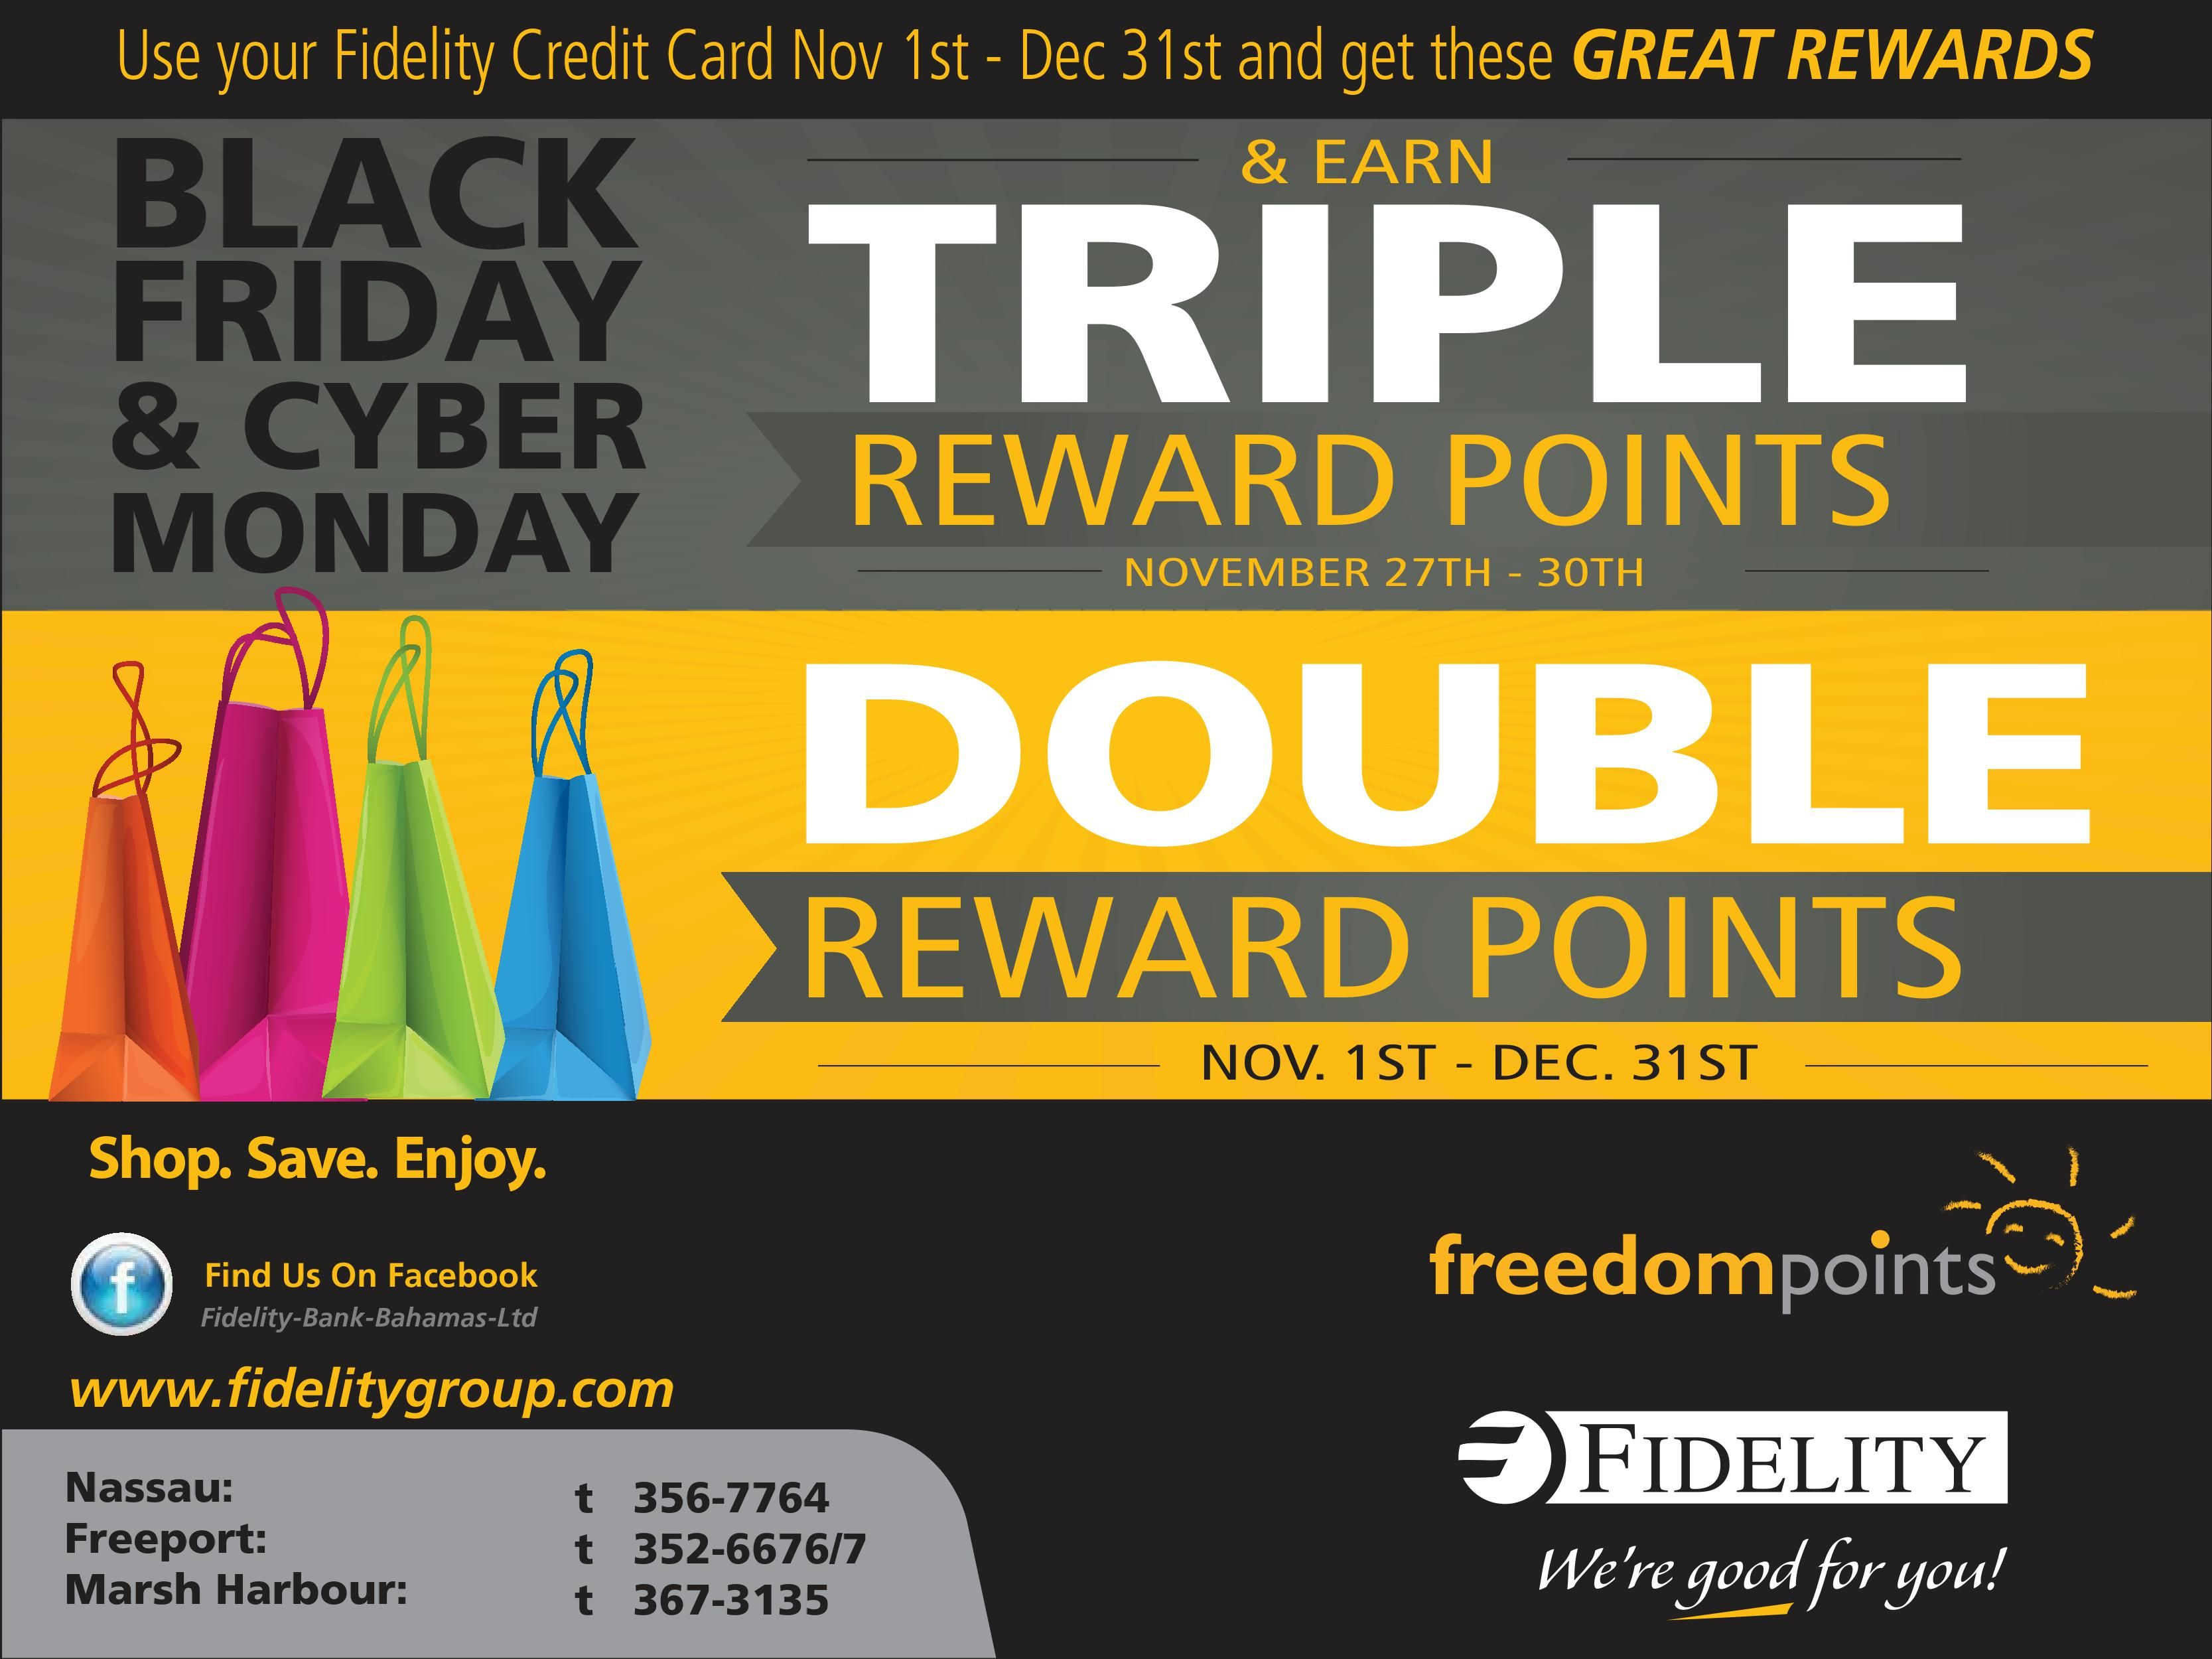 Use Your Fidelity Credit Card November 1st To December 31st And